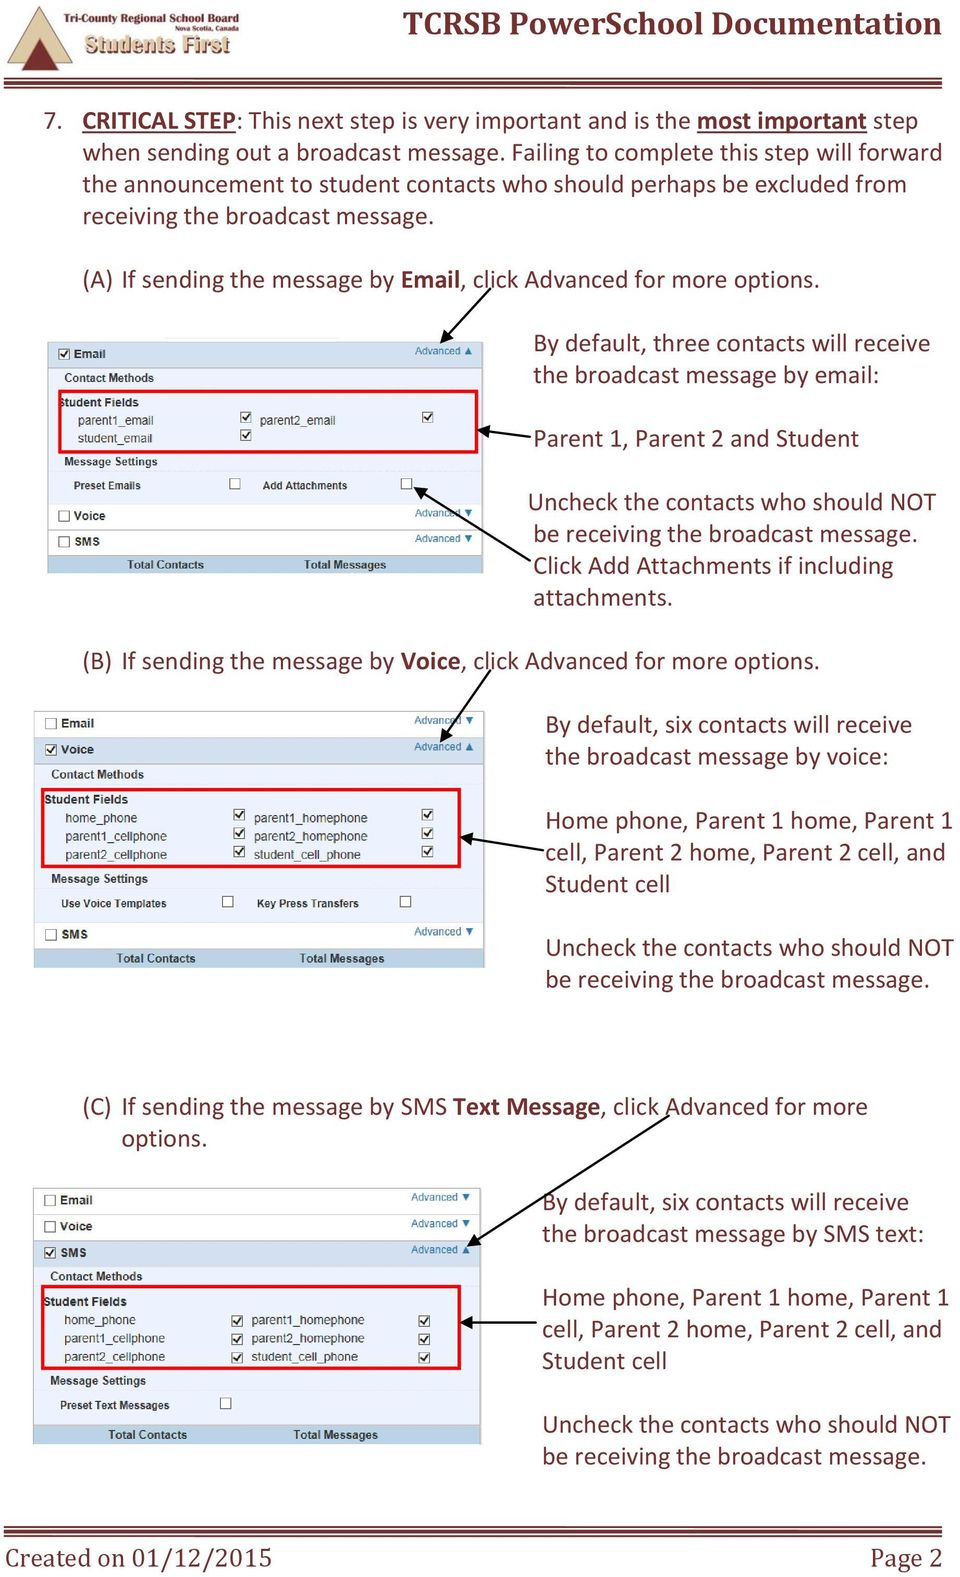 (A) If sending the message by Email, click Advanced for more options.